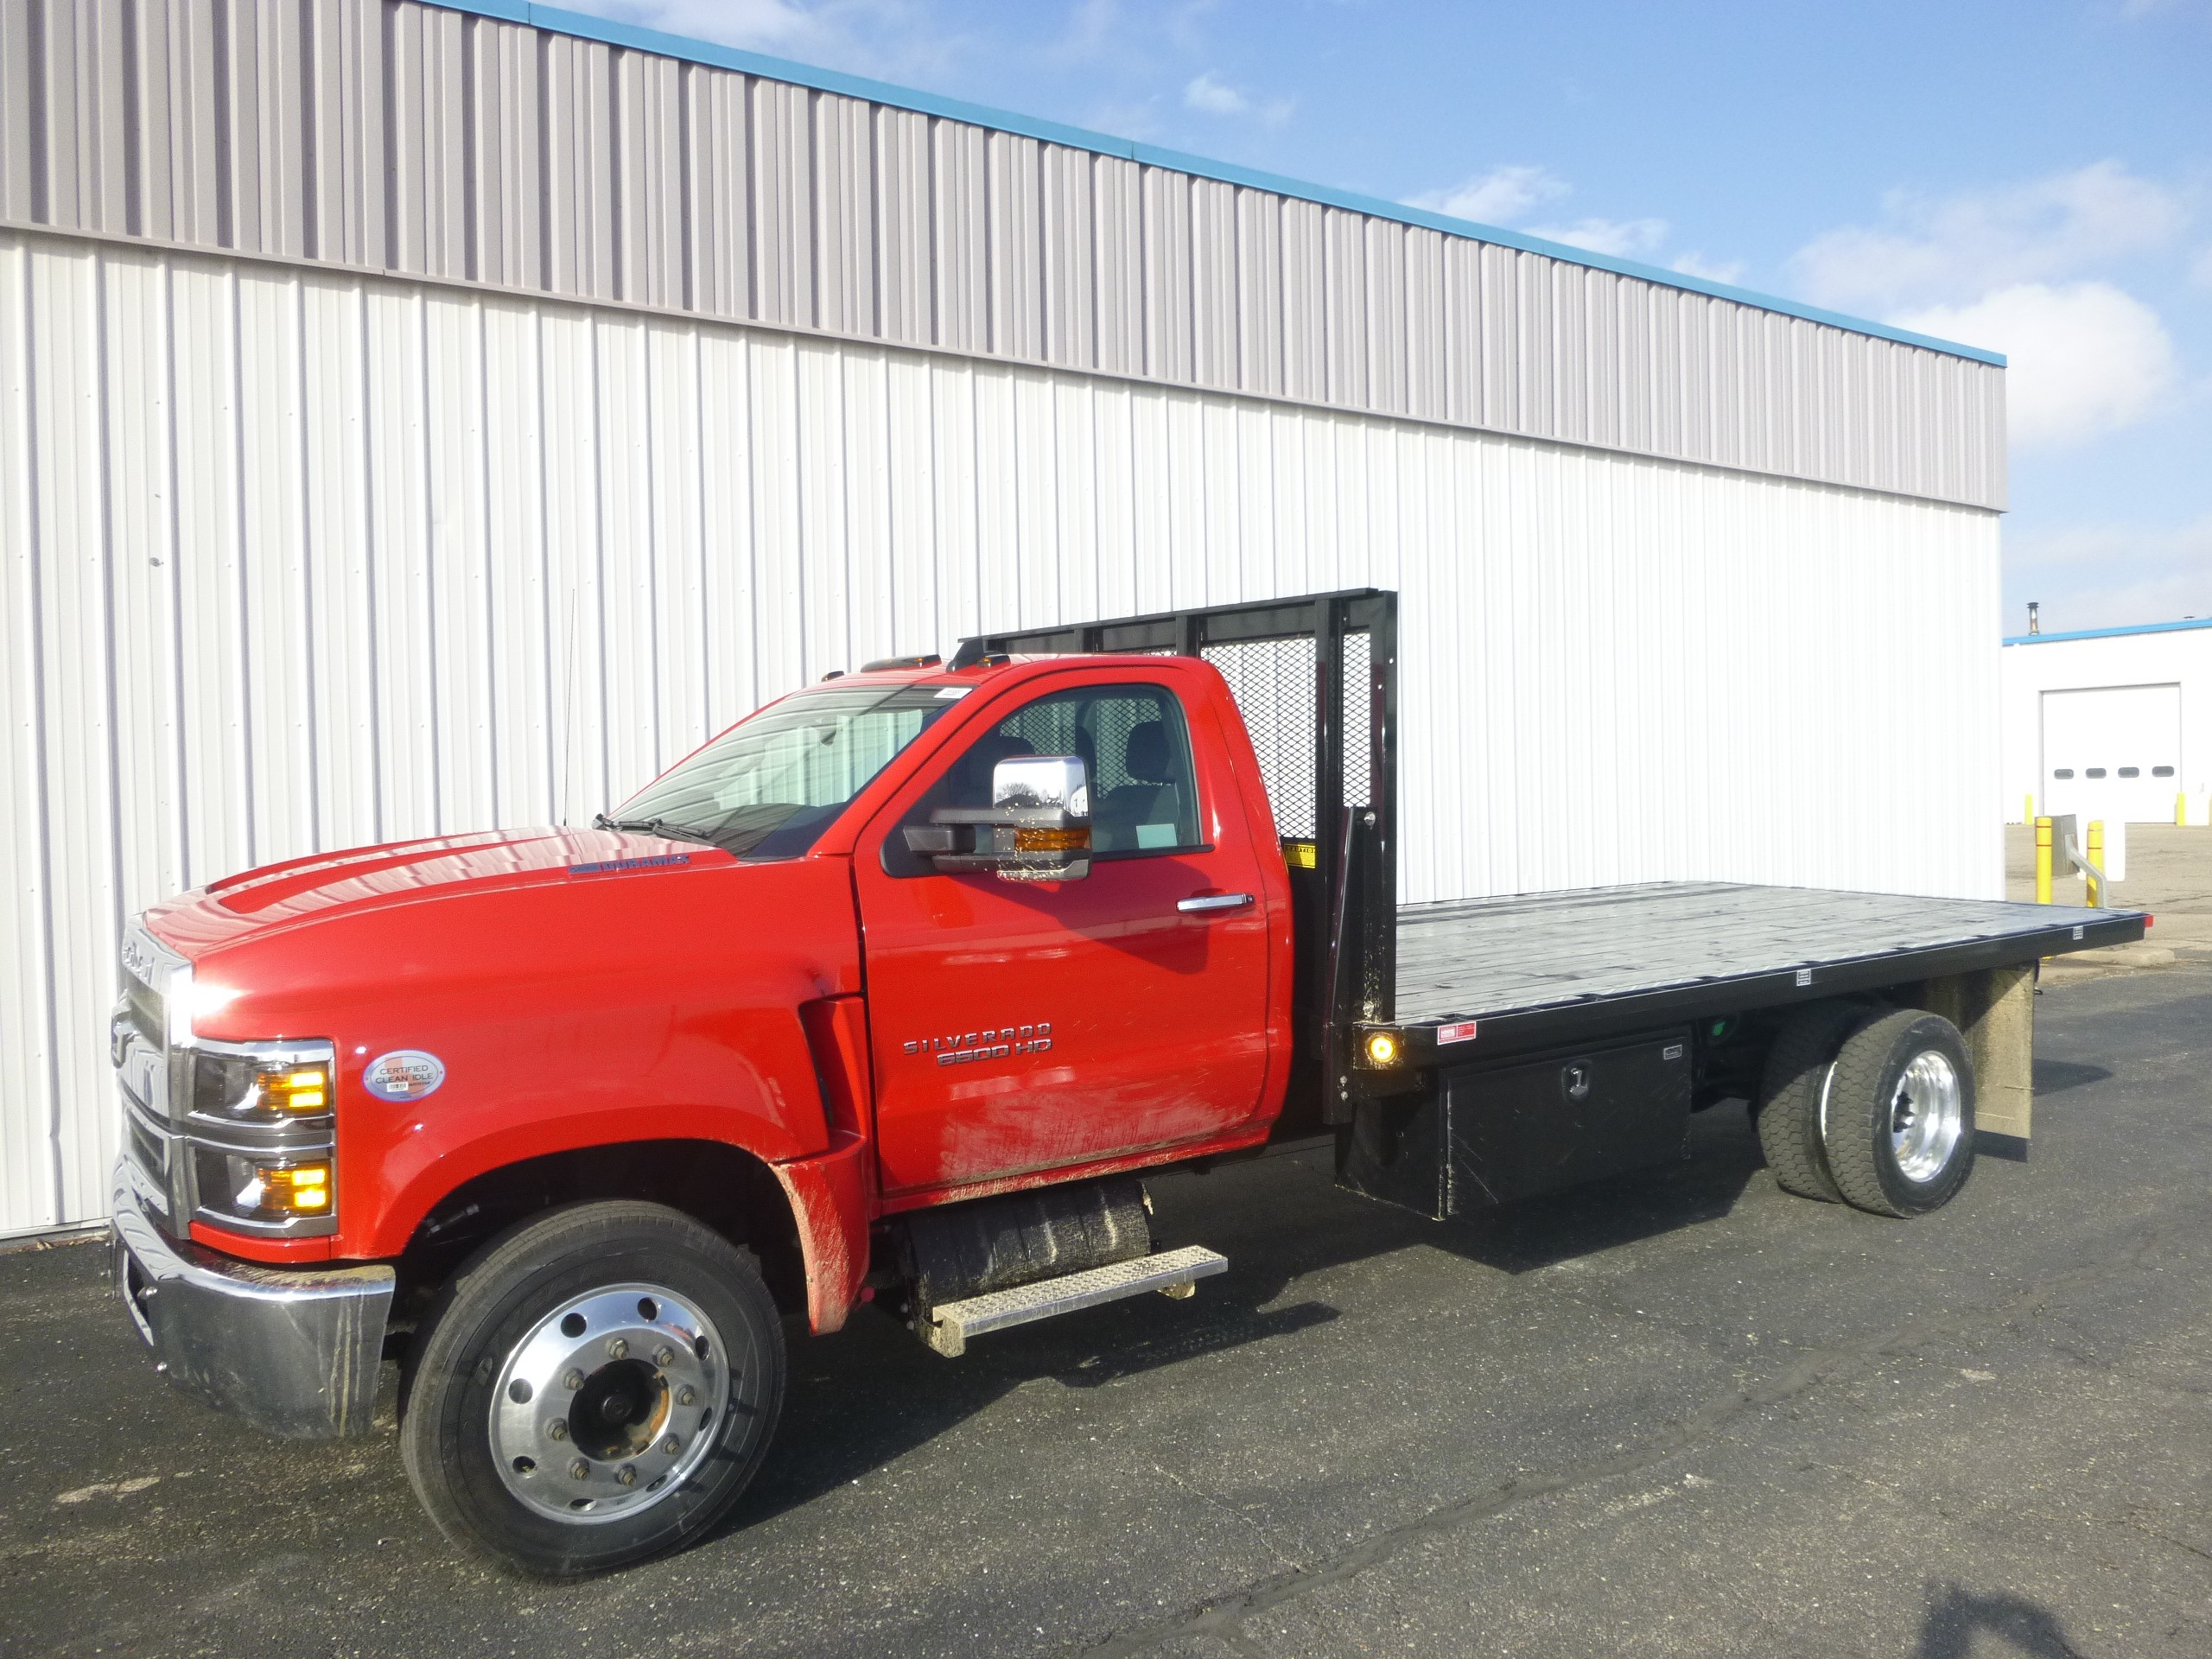 New, 2019, Chevrolet, 6500 2WD Chassis, Cab / Chassis Trucks